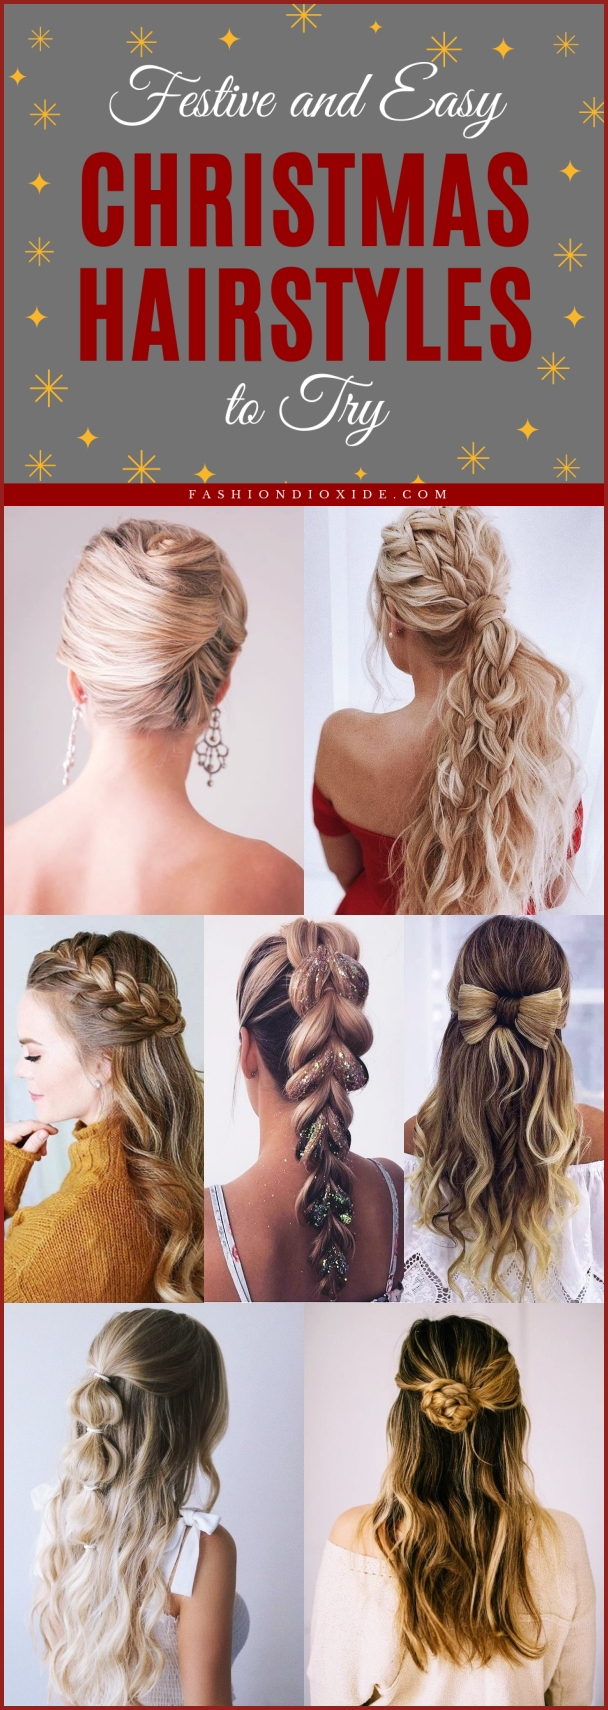 Festive-and-Easy-Christmas-Hairstyles-to-Try